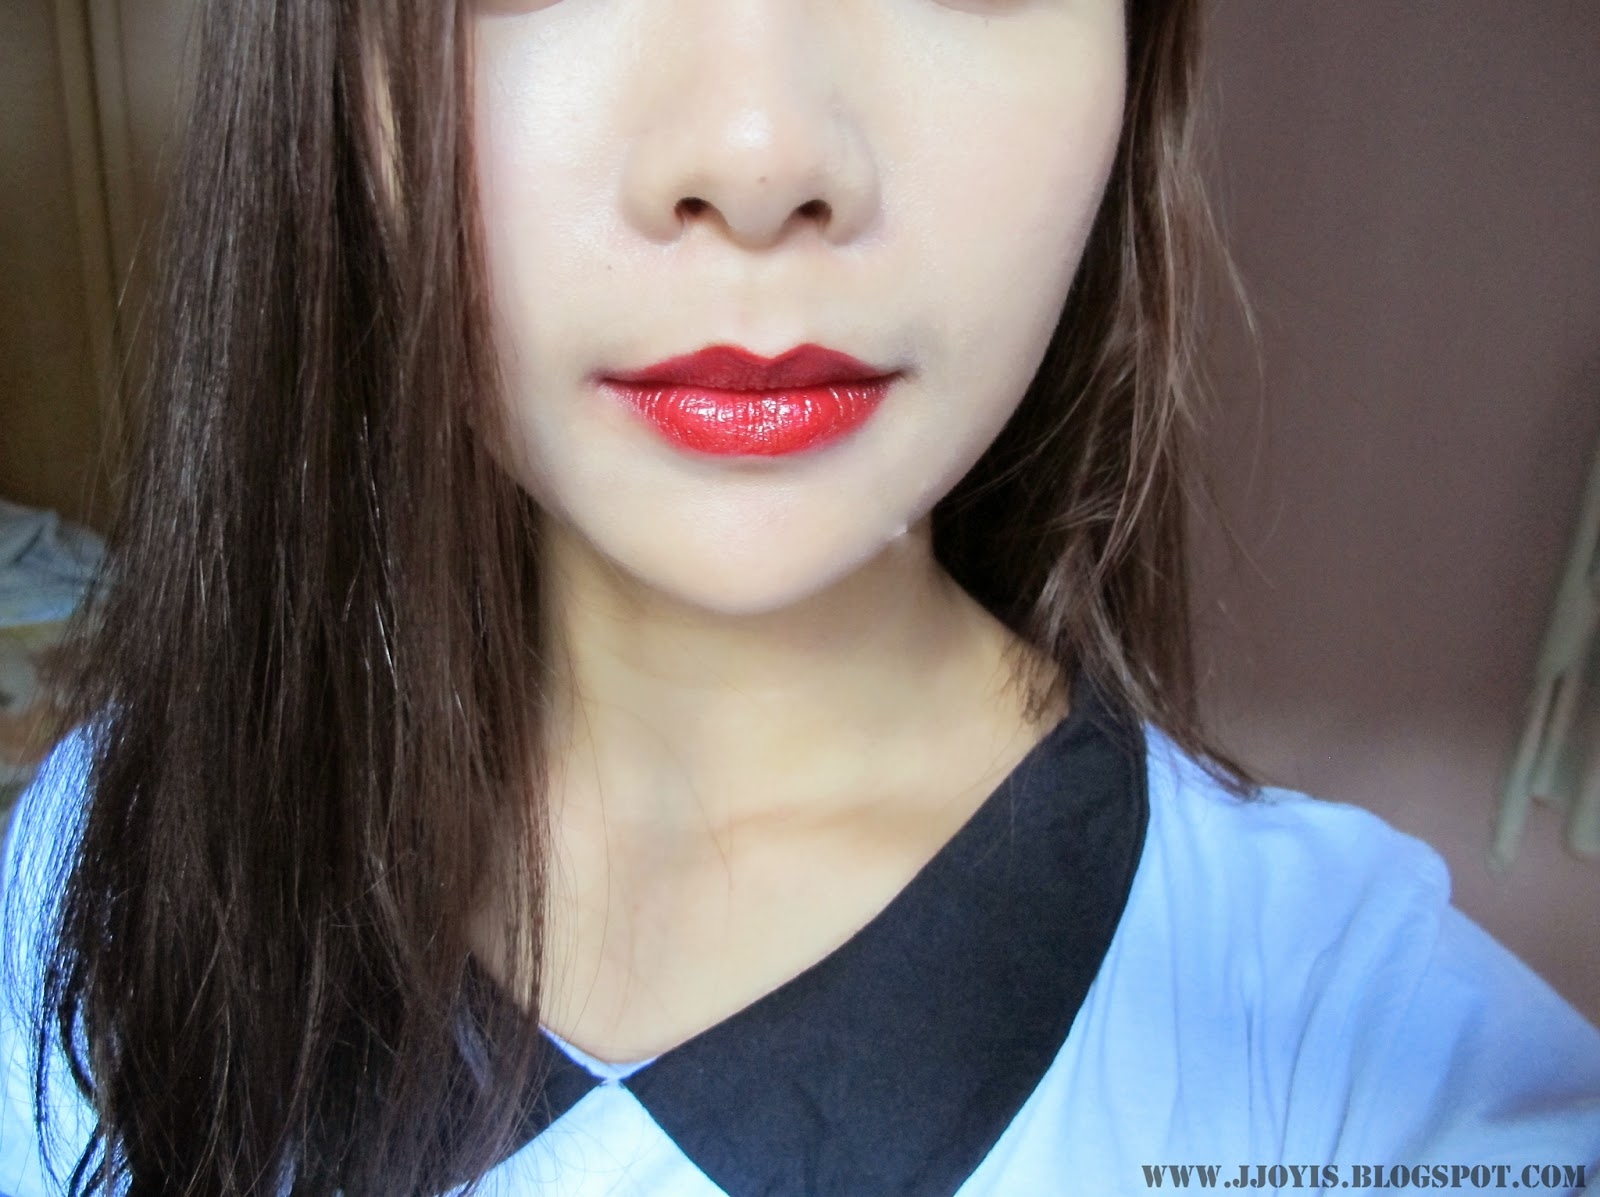 TheFaceShop Black Label Lipstick #10 Fashion red swatch